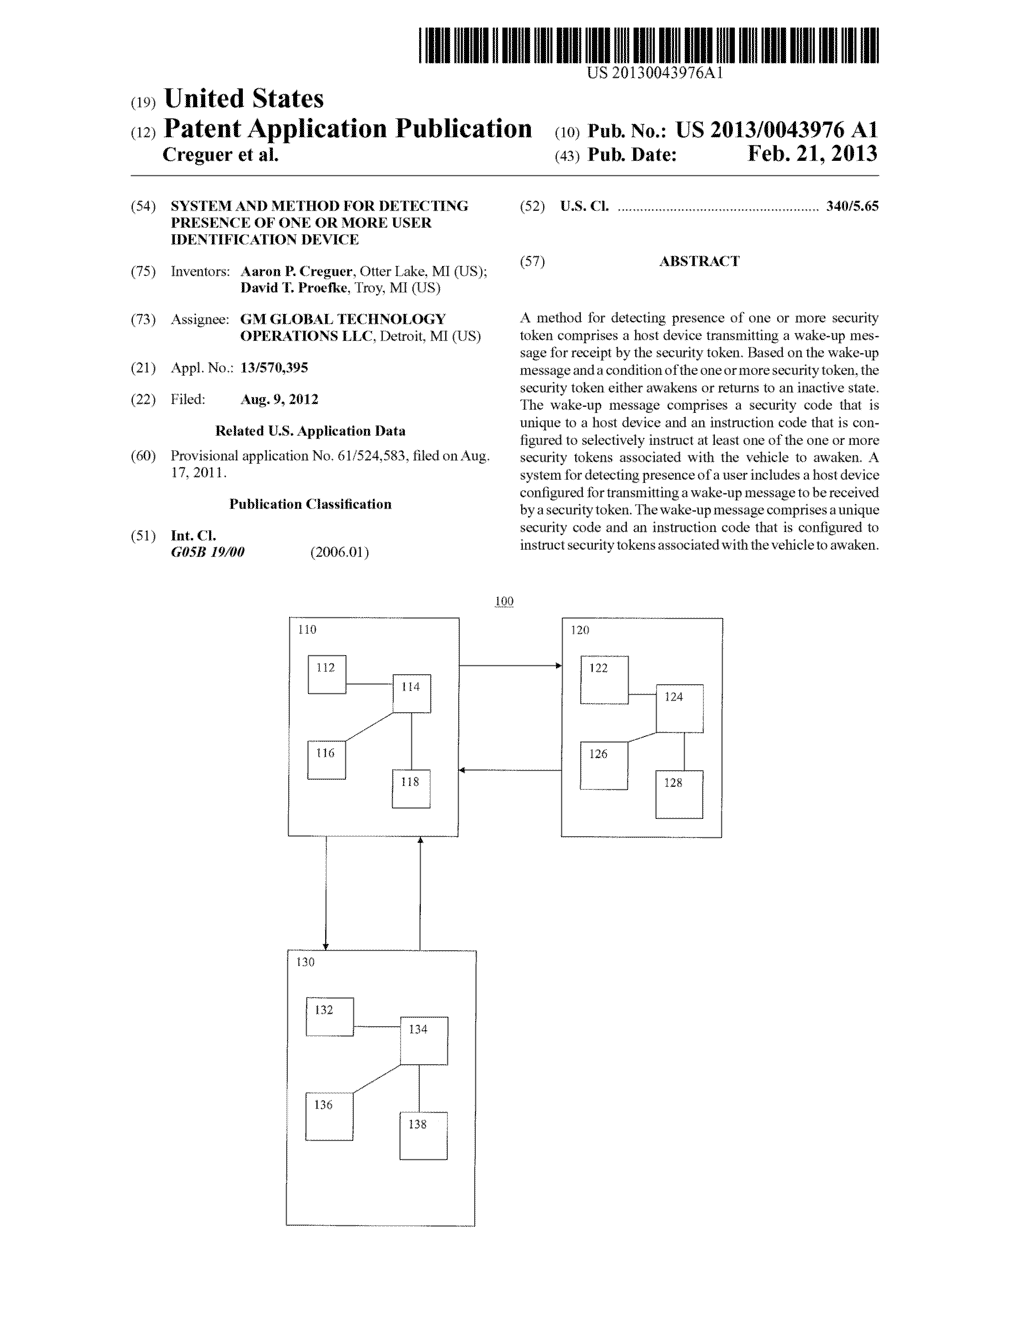 SYSTEM AND METHOD FOR DETECTING PRESENCE OF ONE OR MORE USER     IDENTIFICATION DEVICE - diagram, schematic, and image 01